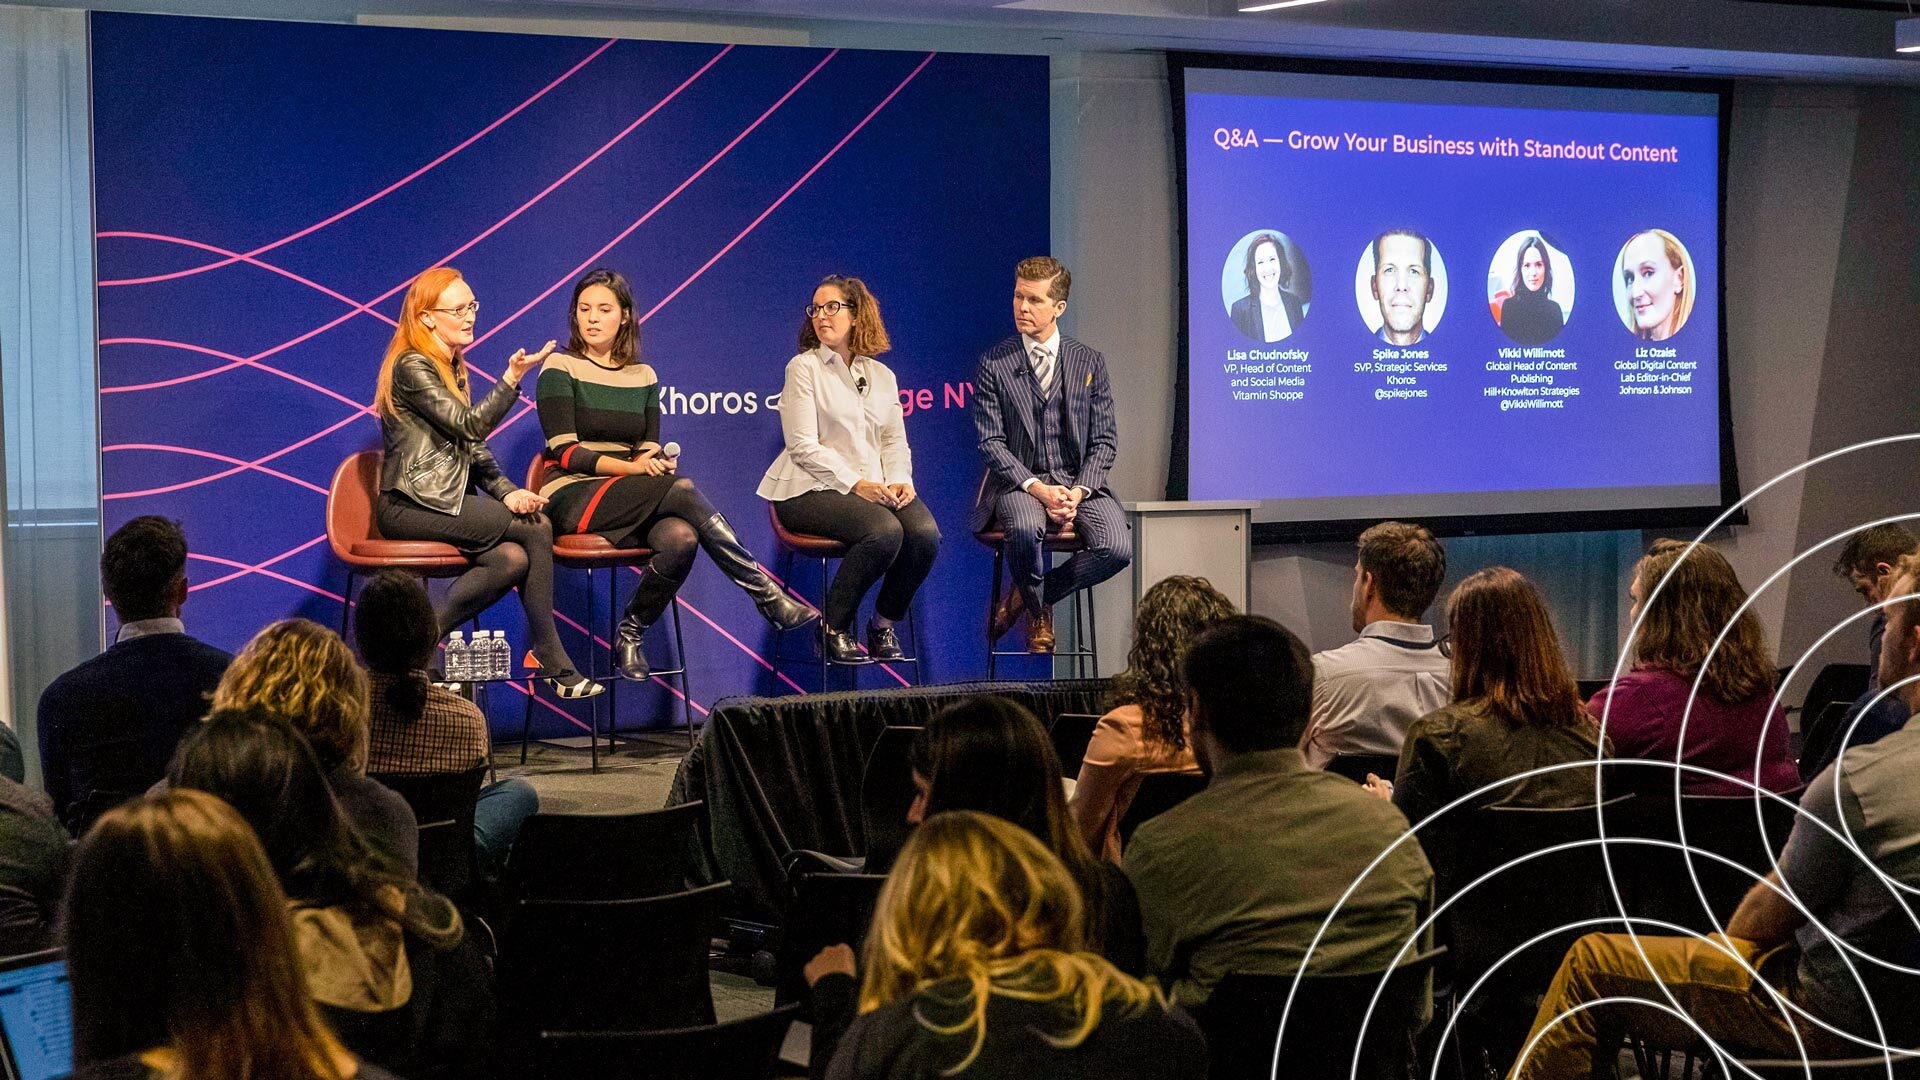 How to Truly Connect with Customers: 3 Strategies from Khoros Engage NYC 2019